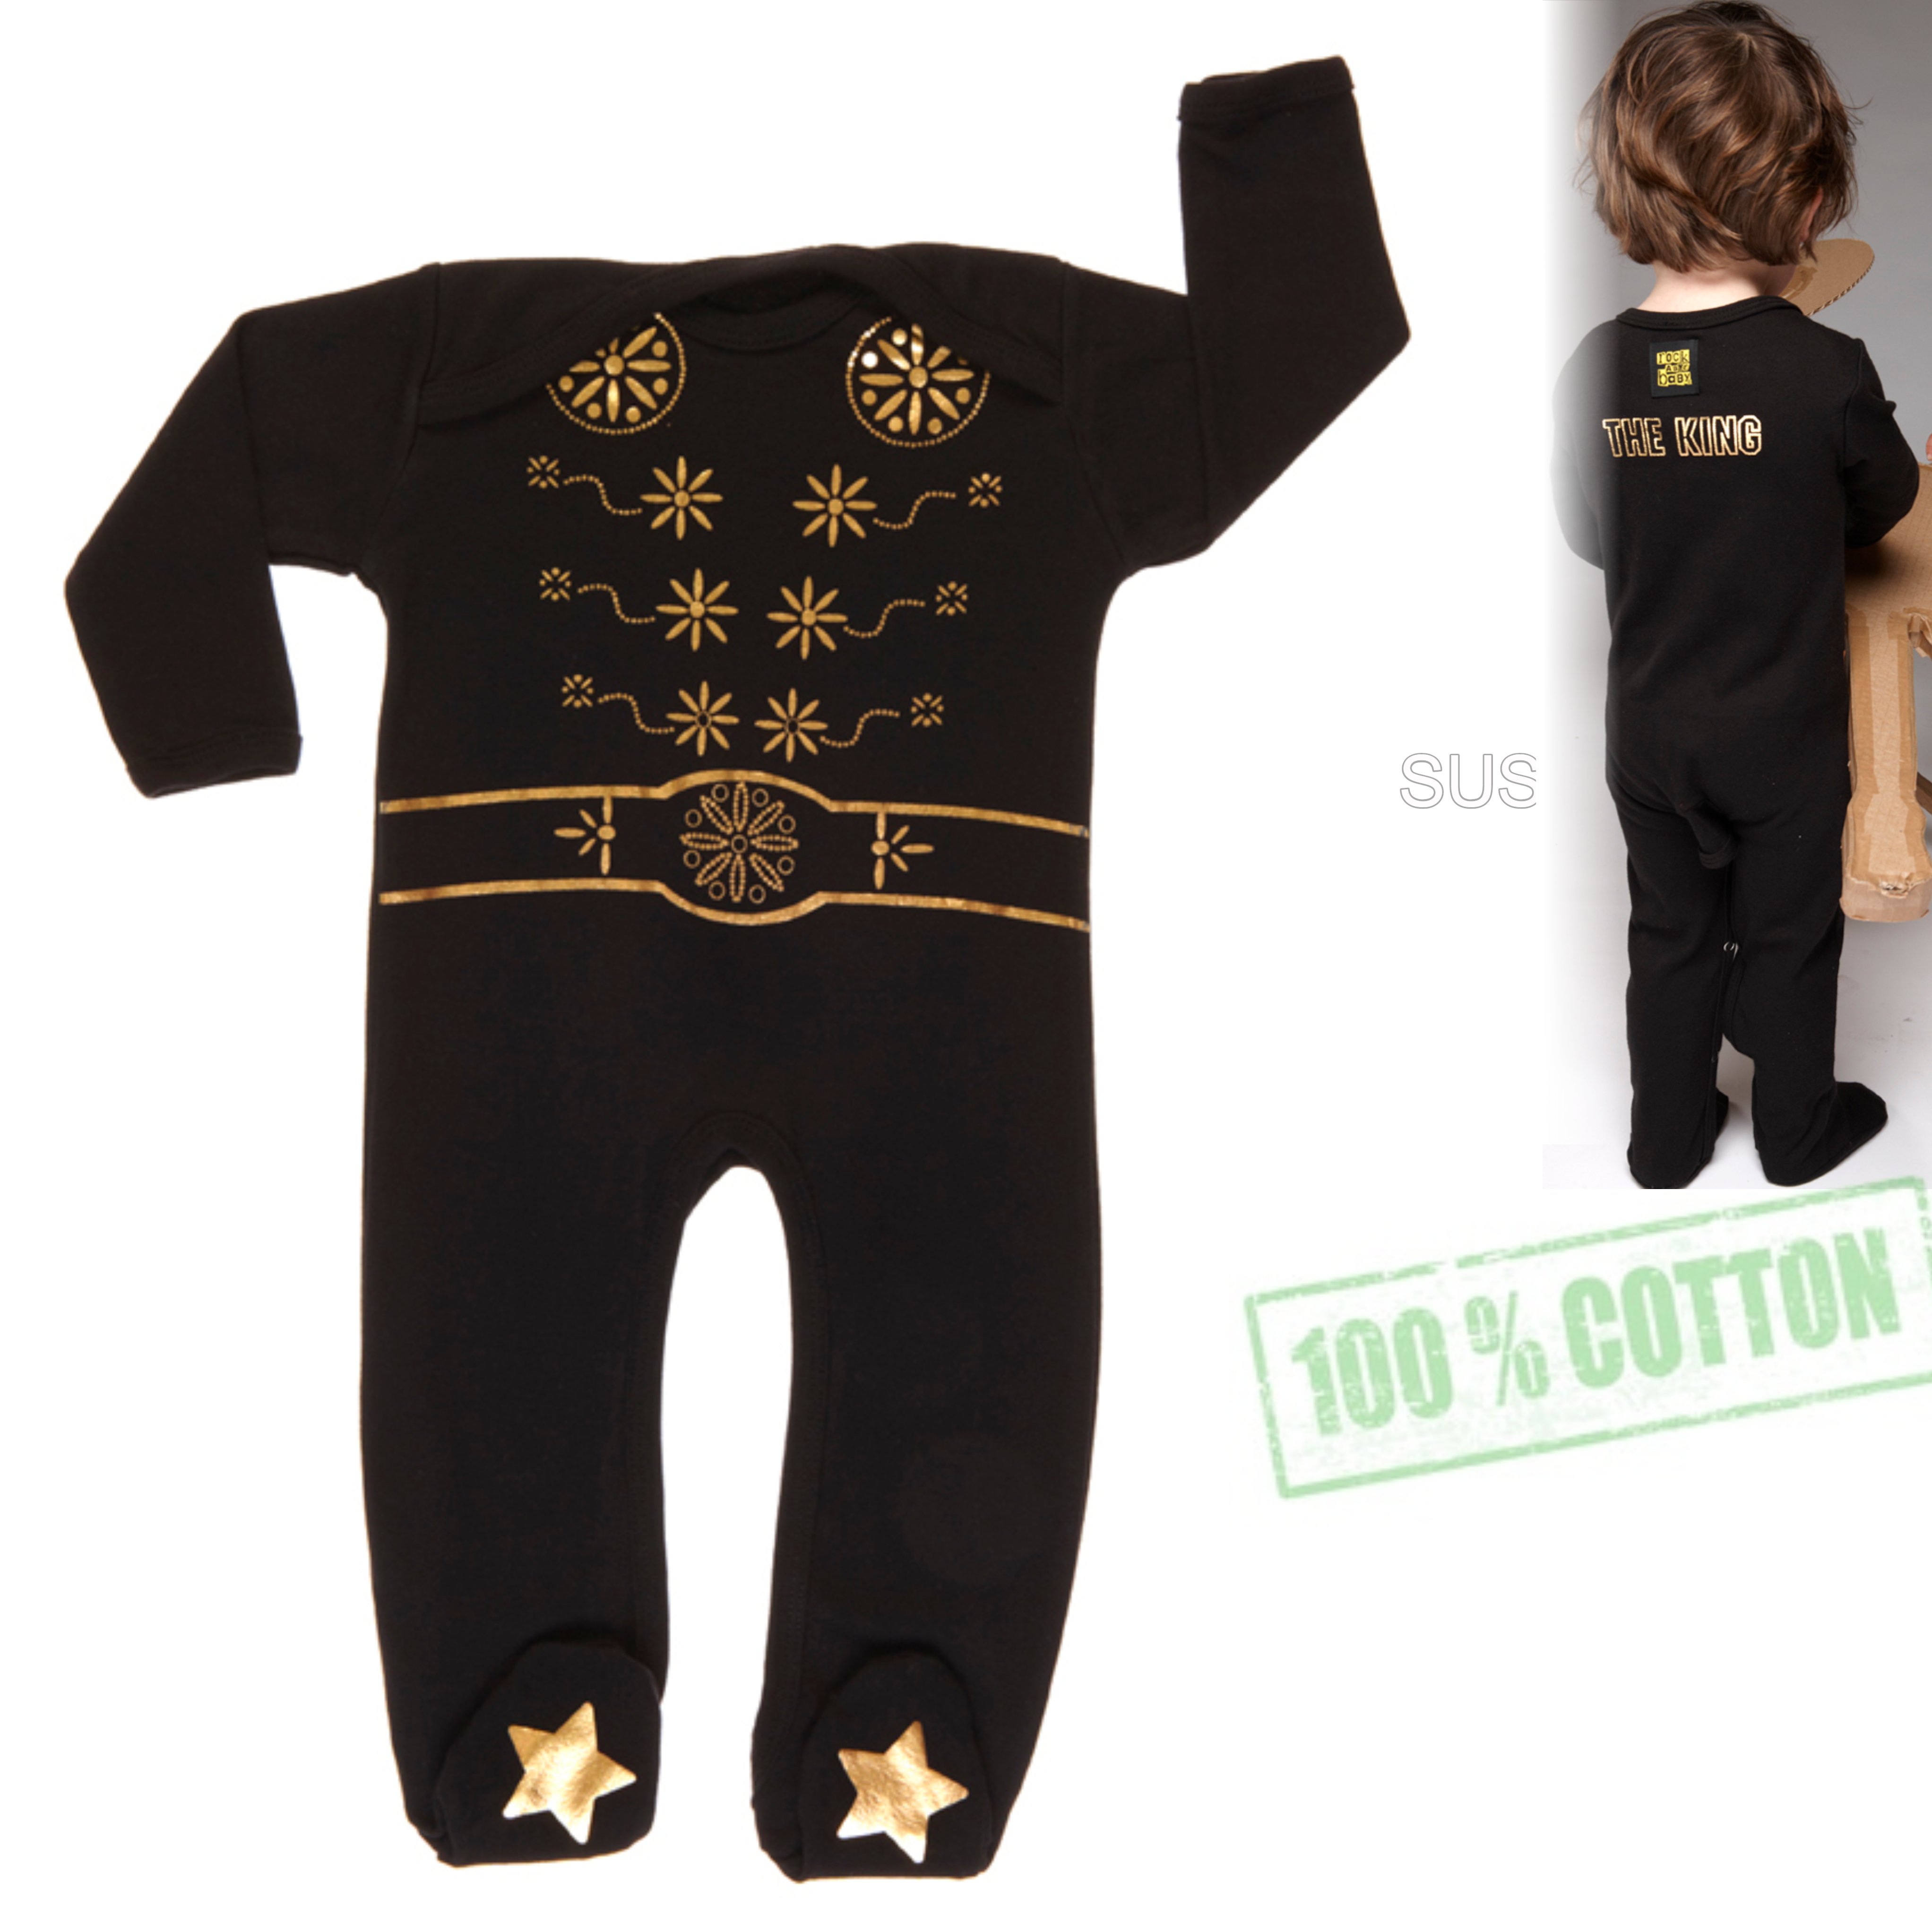 Rockabye Baby Elvis King Sleepsuit Black|SuperSoft Cotton|Gold Star Printed|3-6month